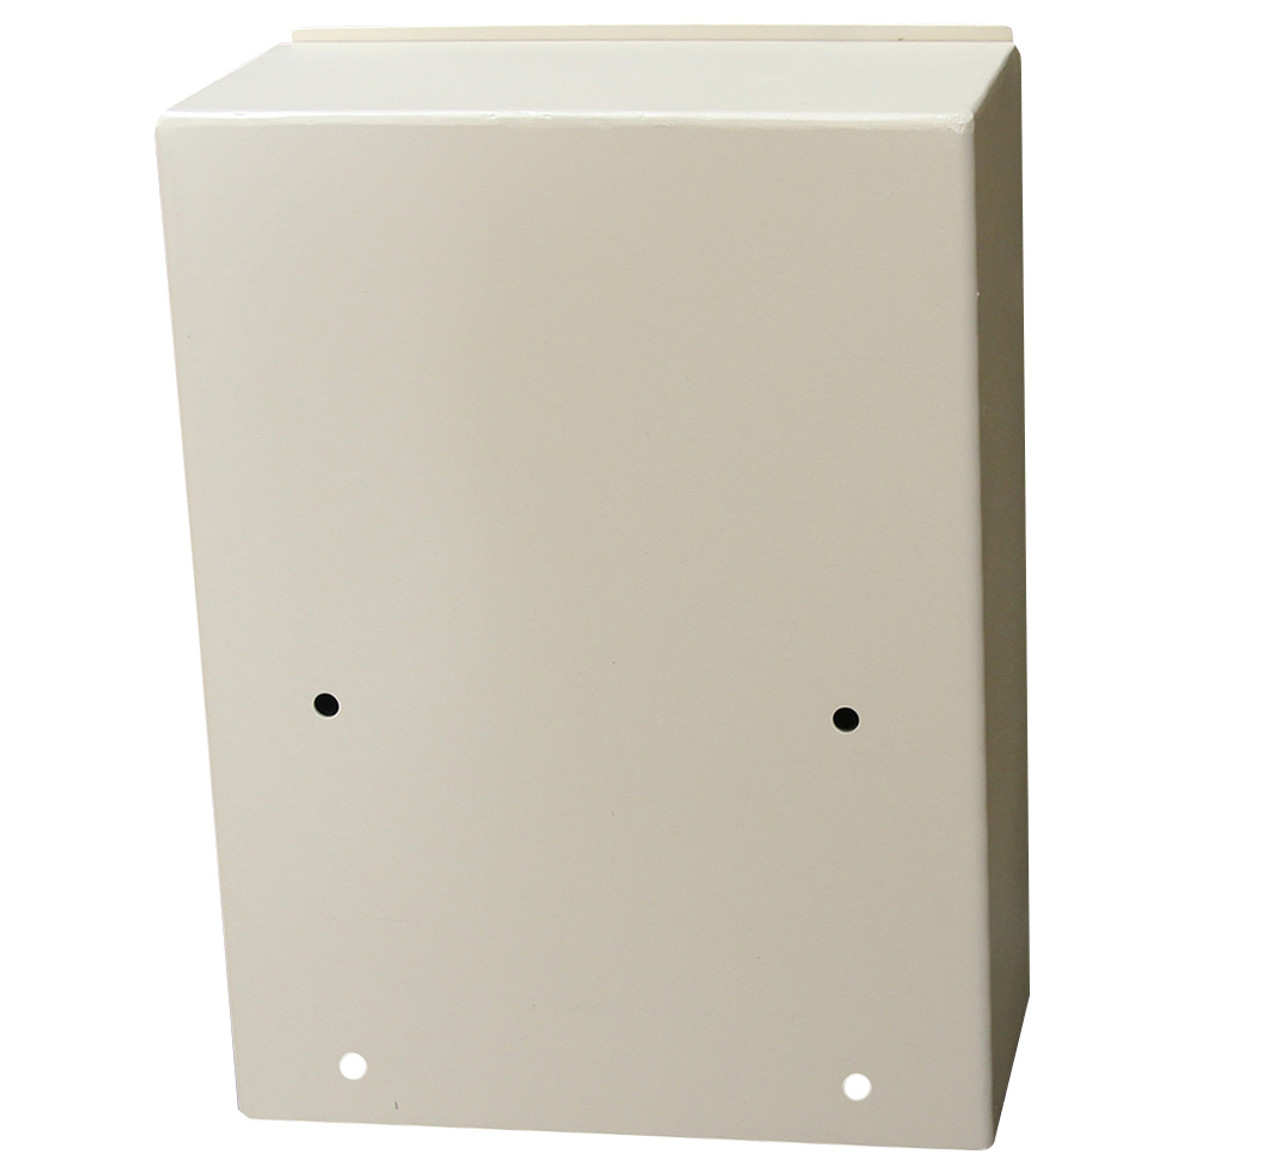 High Security Wall Mounted Payment Drop Box Mounting Holes